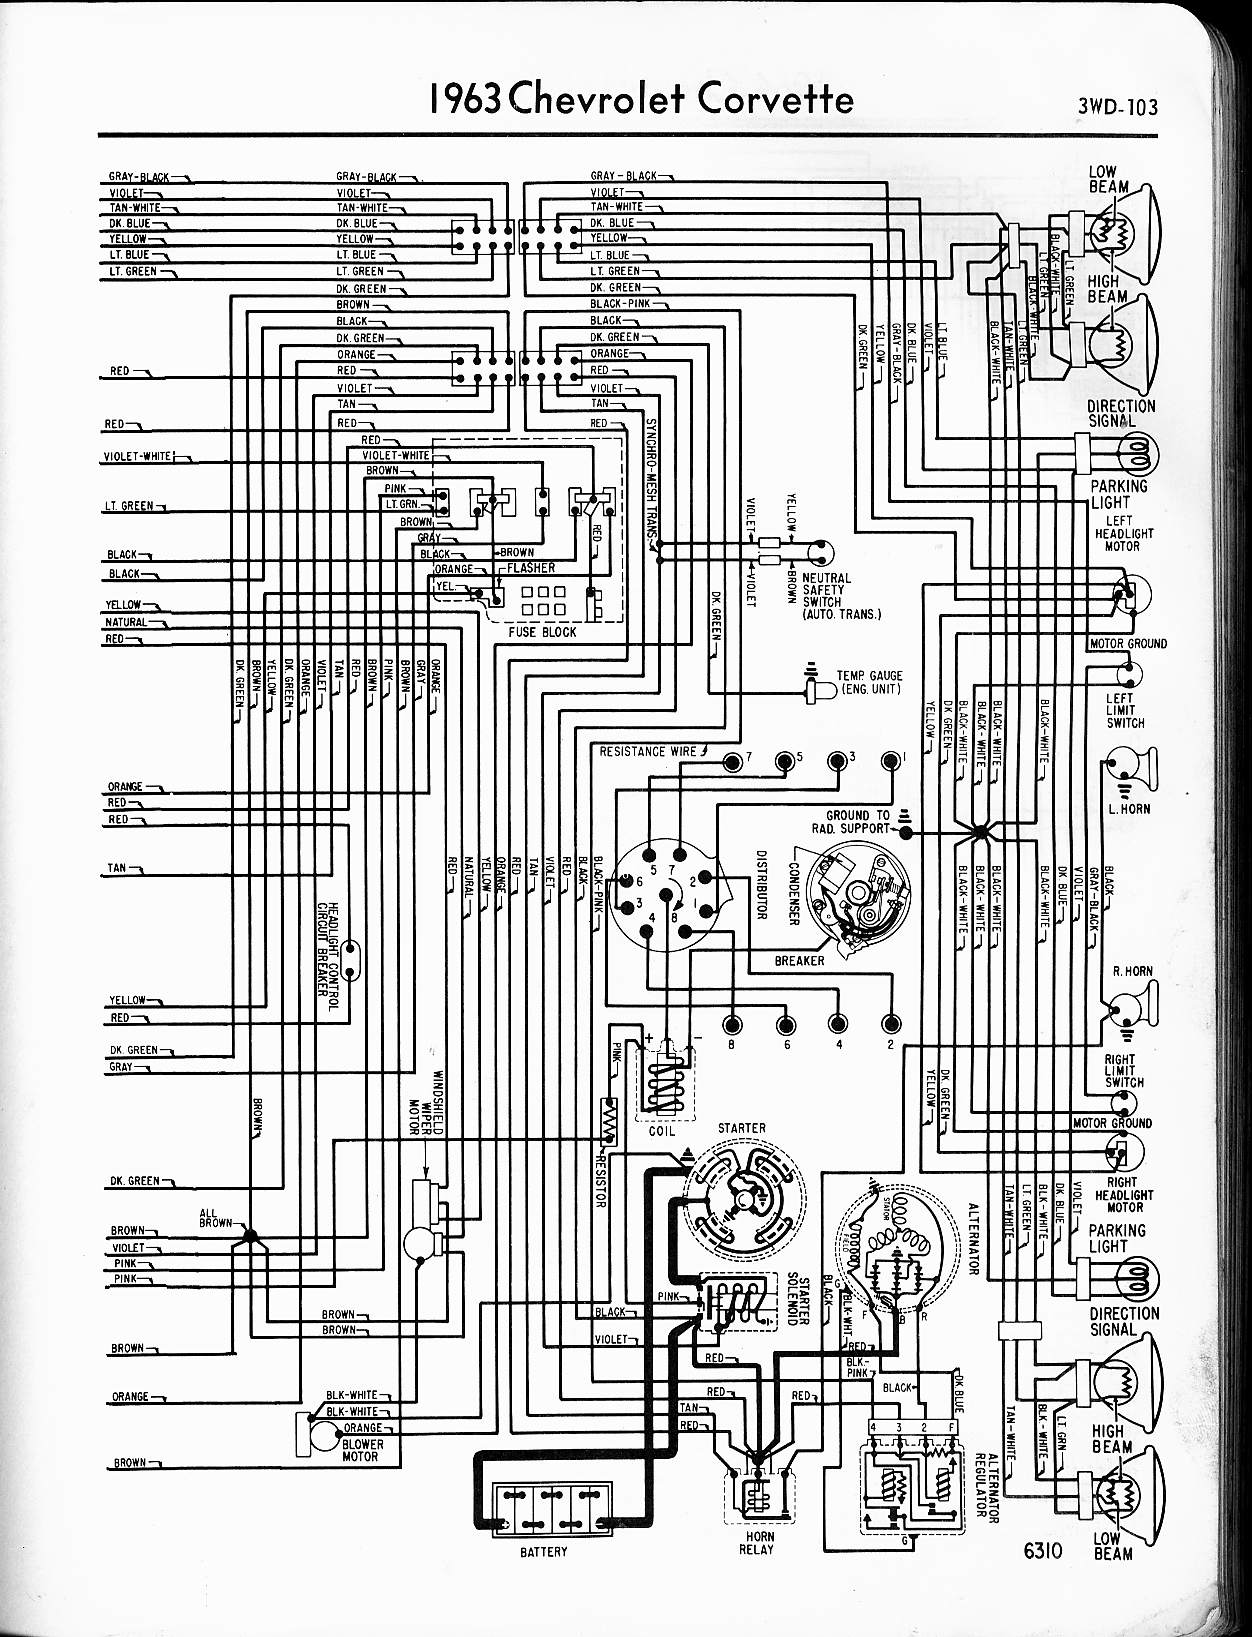 MWireChev63_3WD 103 57 65 chevy wiring diagrams 1963 corvette wiring diagram at gsmx.co